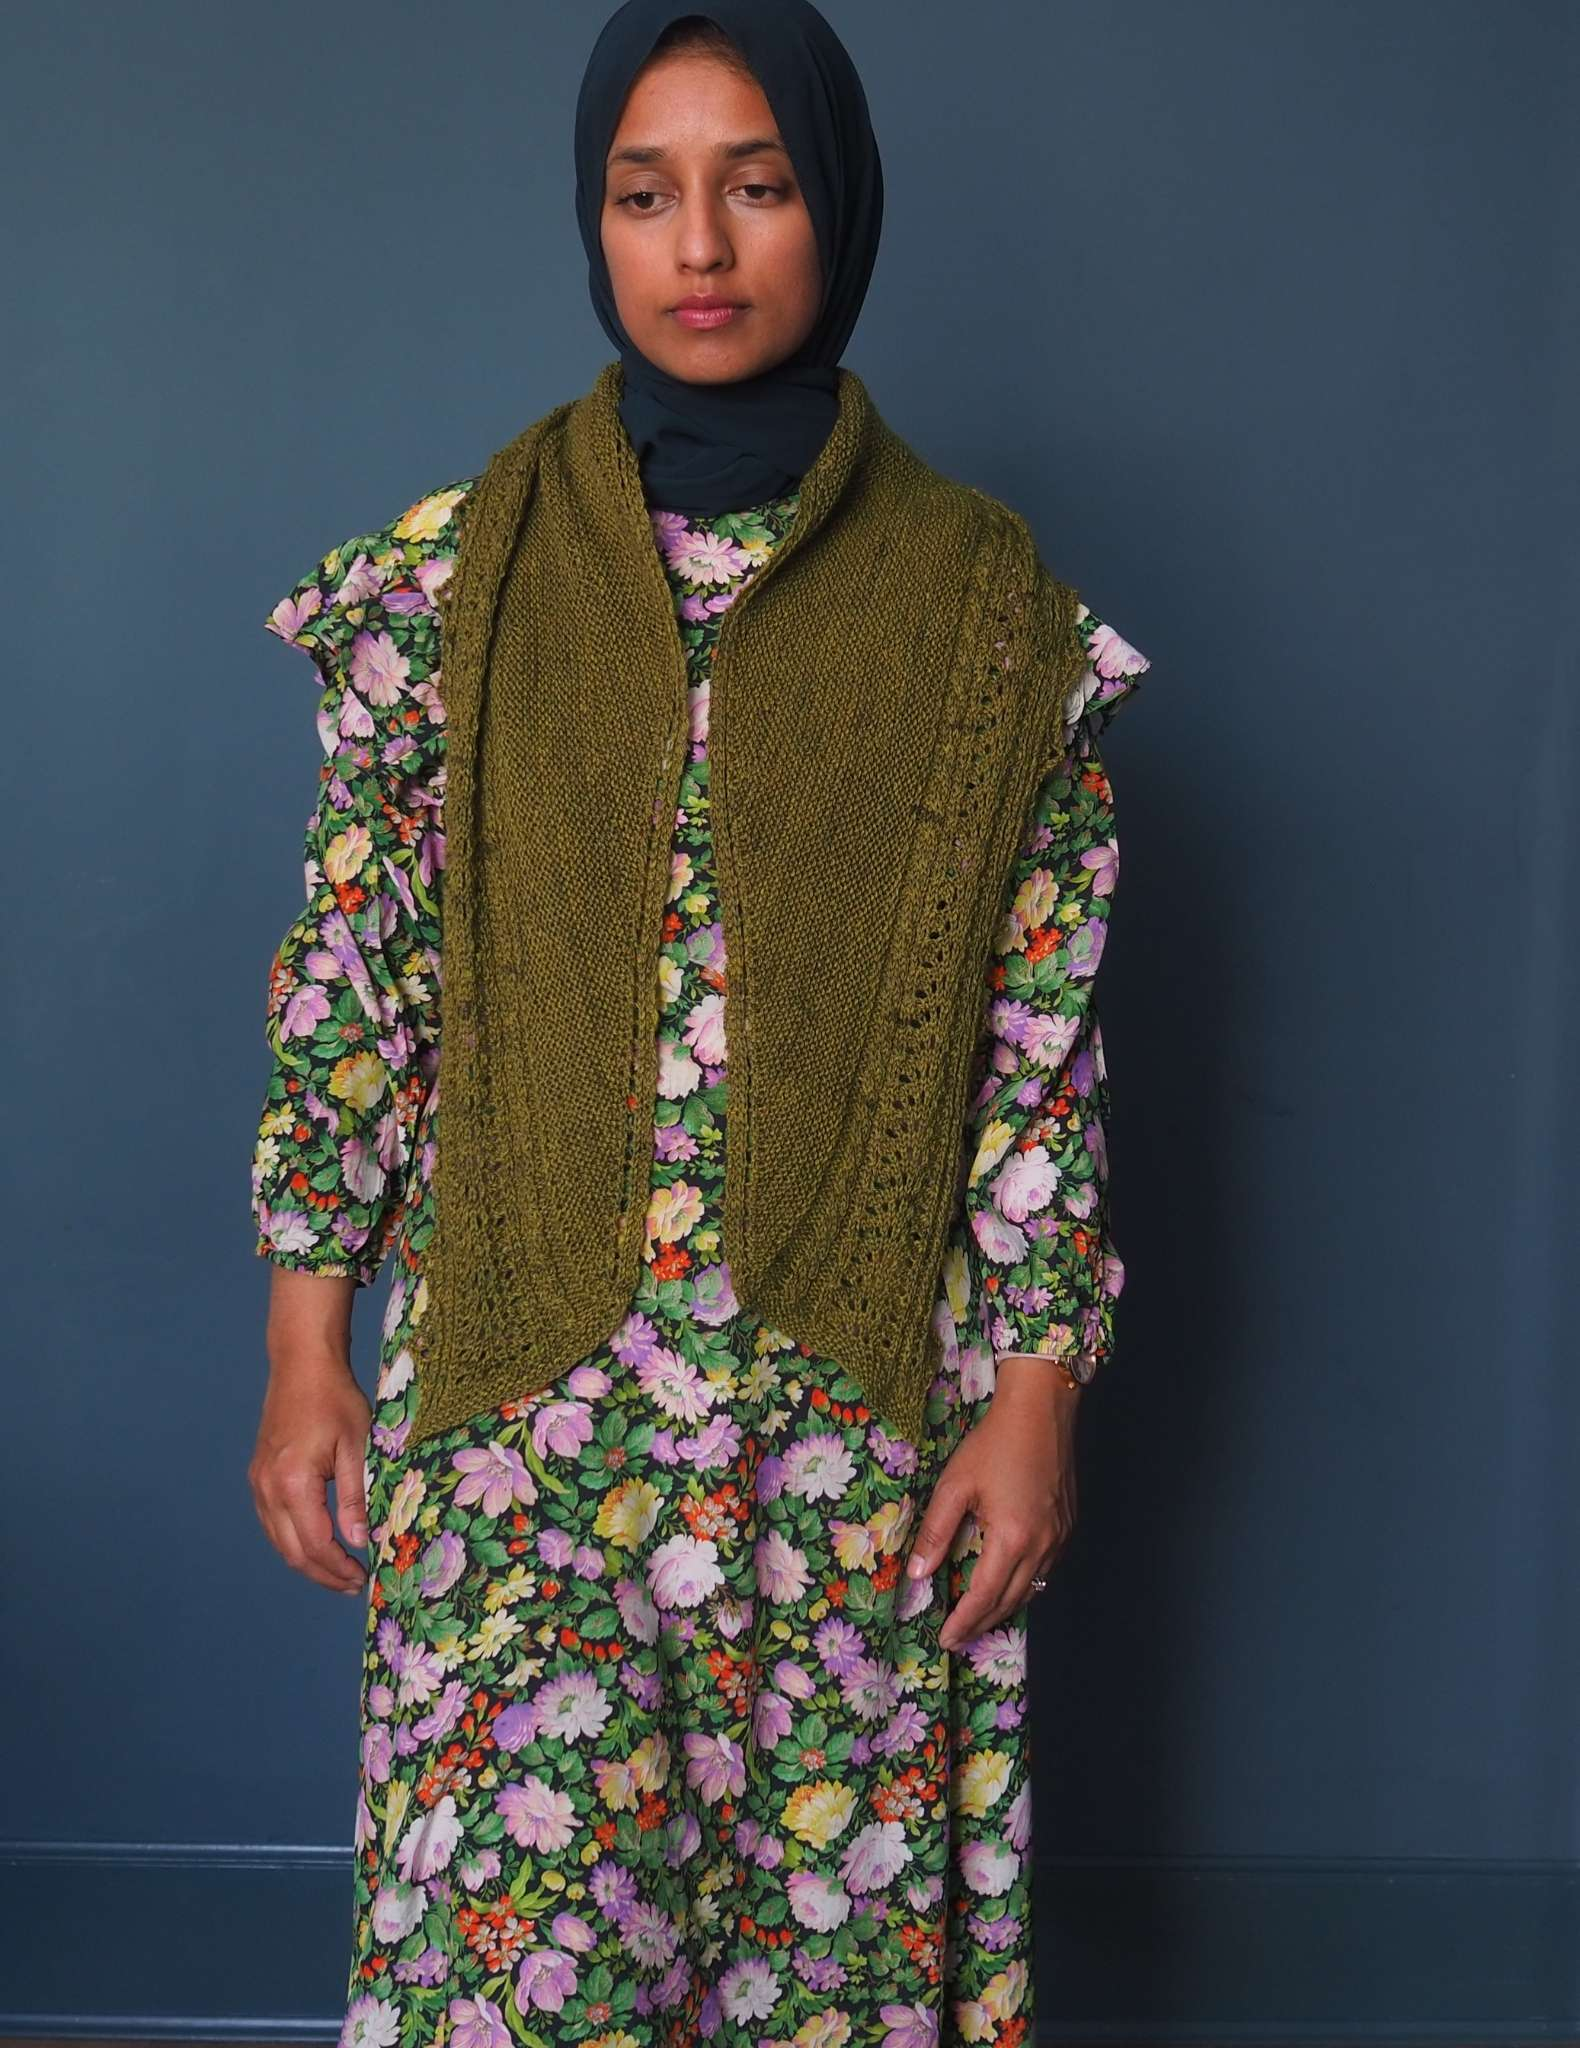 A brown woman in a hijab stands in front of a dark blue background. She is wearing a floral dress in shades of green, pink and yellow and a long green shawl is draped around her neck with the ends pointing down at the front.